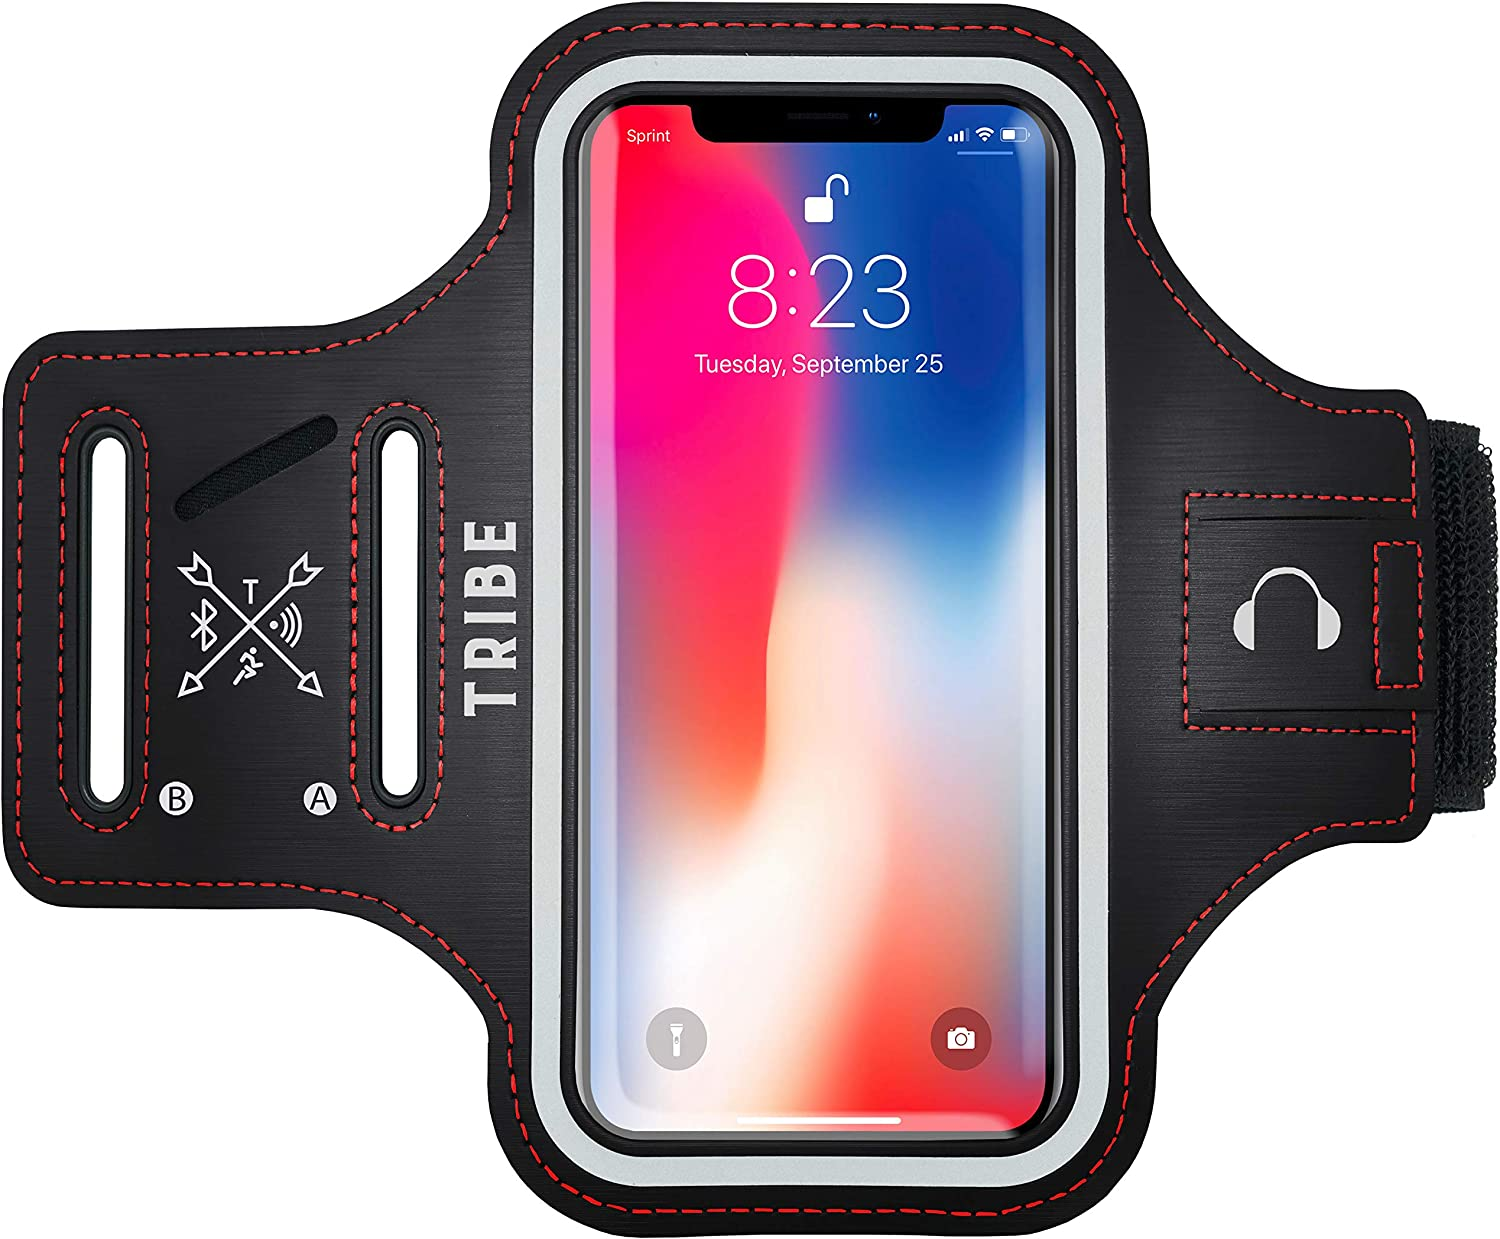 Tribe Water Resistant Cell Phone Armband Case for iPhone 8/7/6/6s or Similar. Adjustable Elastic Band & Key Slot